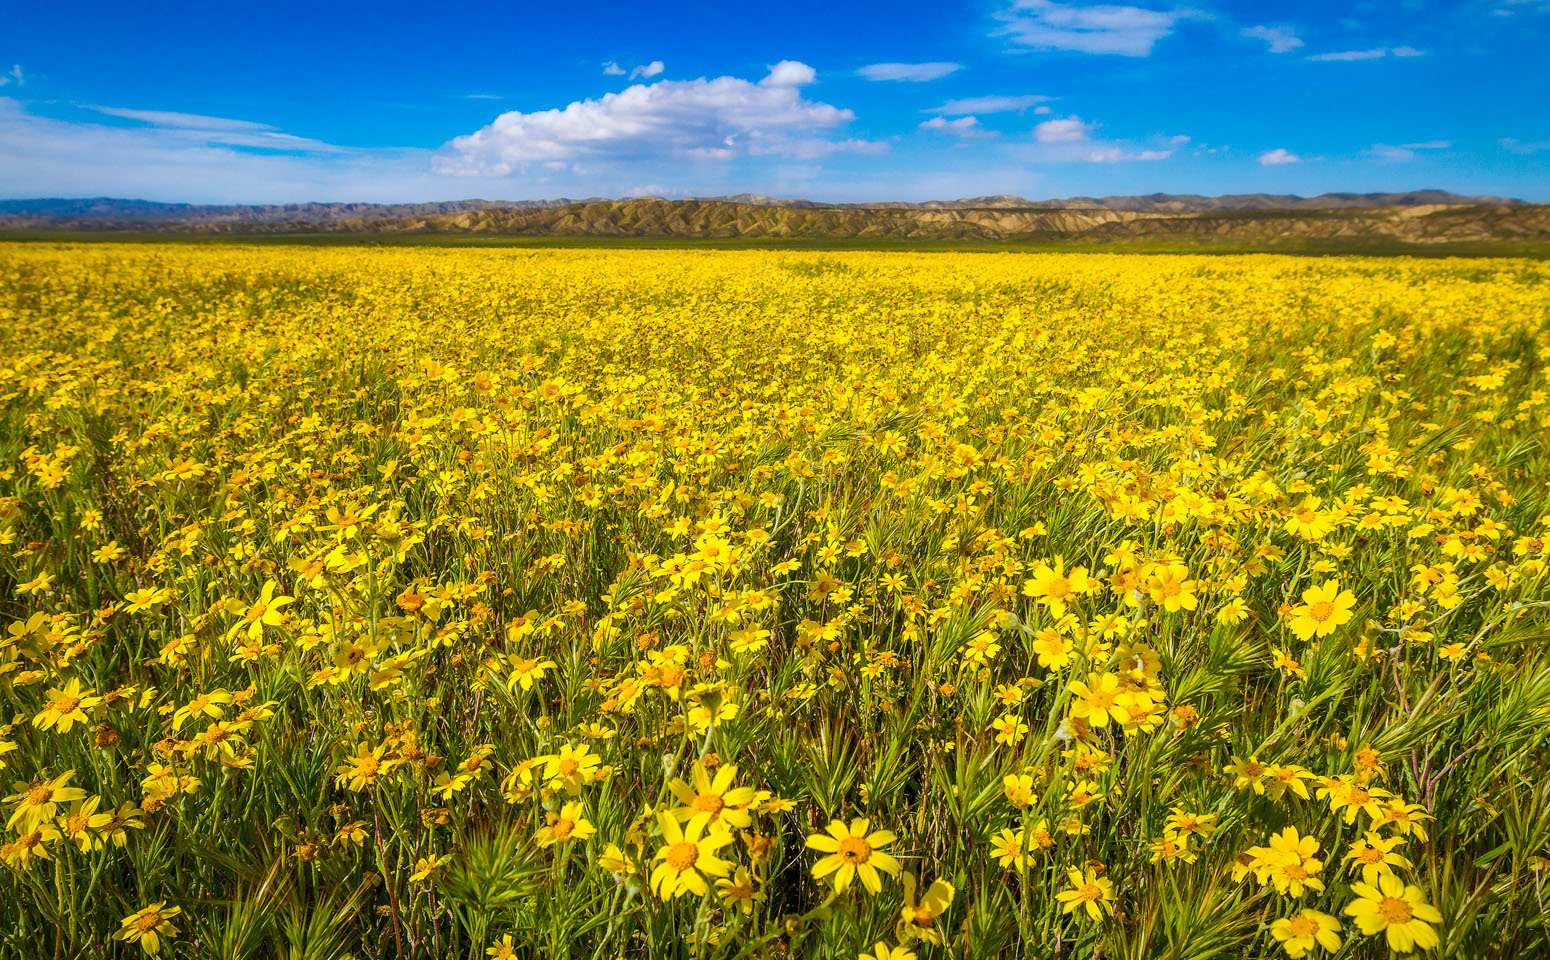 Carrizo National Monument spring flower bloom. This photo was taken early April.